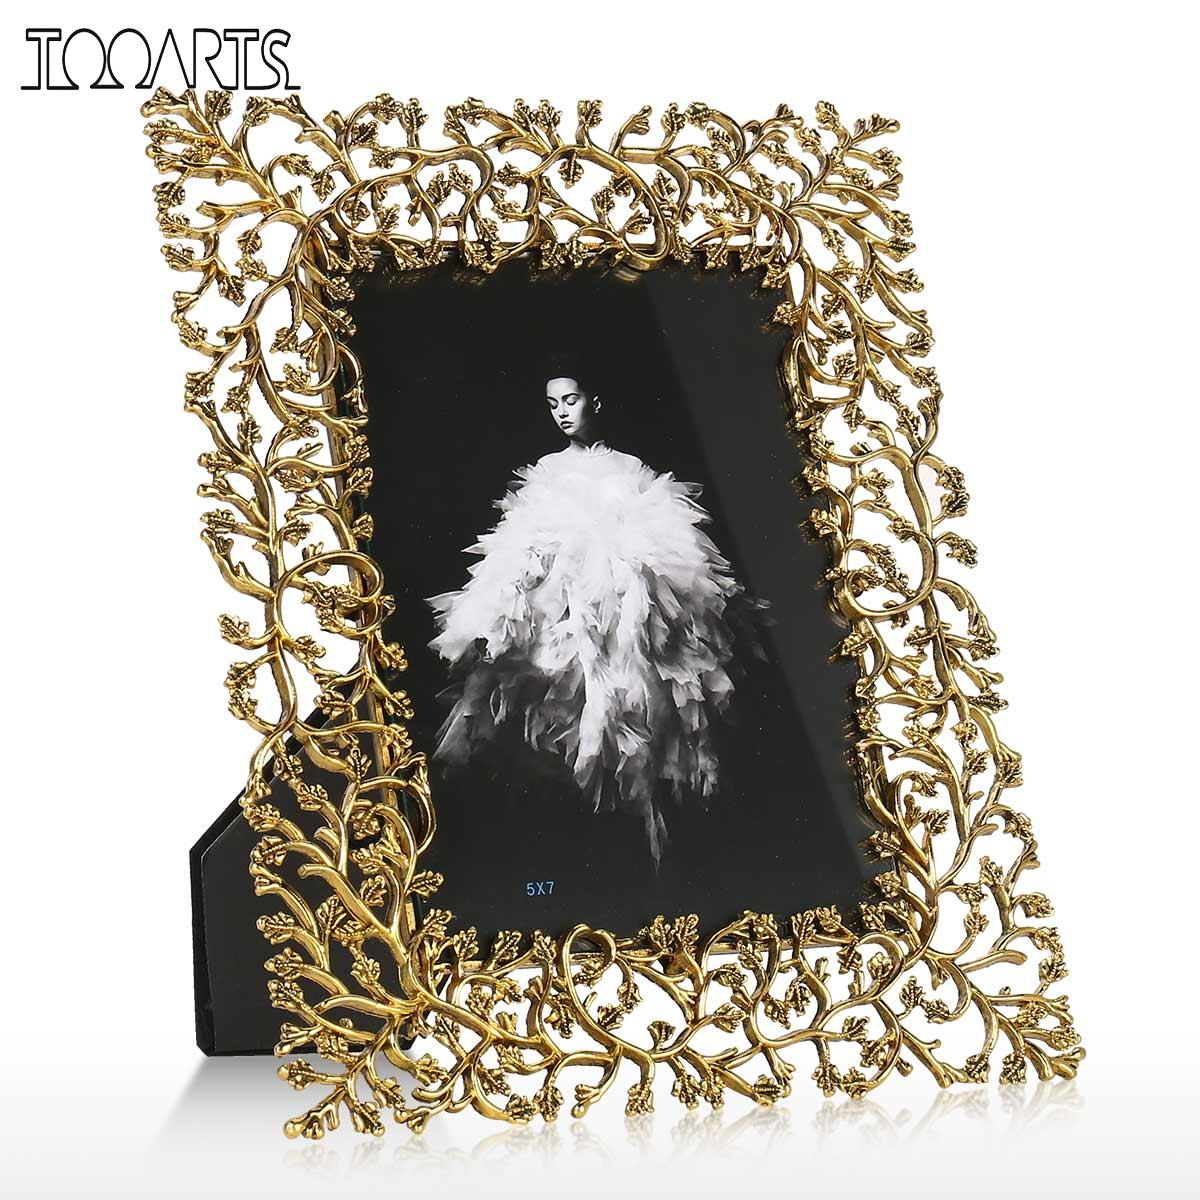 Aluminum Alloy Photo Frame Metal Picture Frame Tabletop Decorative Photo Frame Real Clear Glass Front Cover